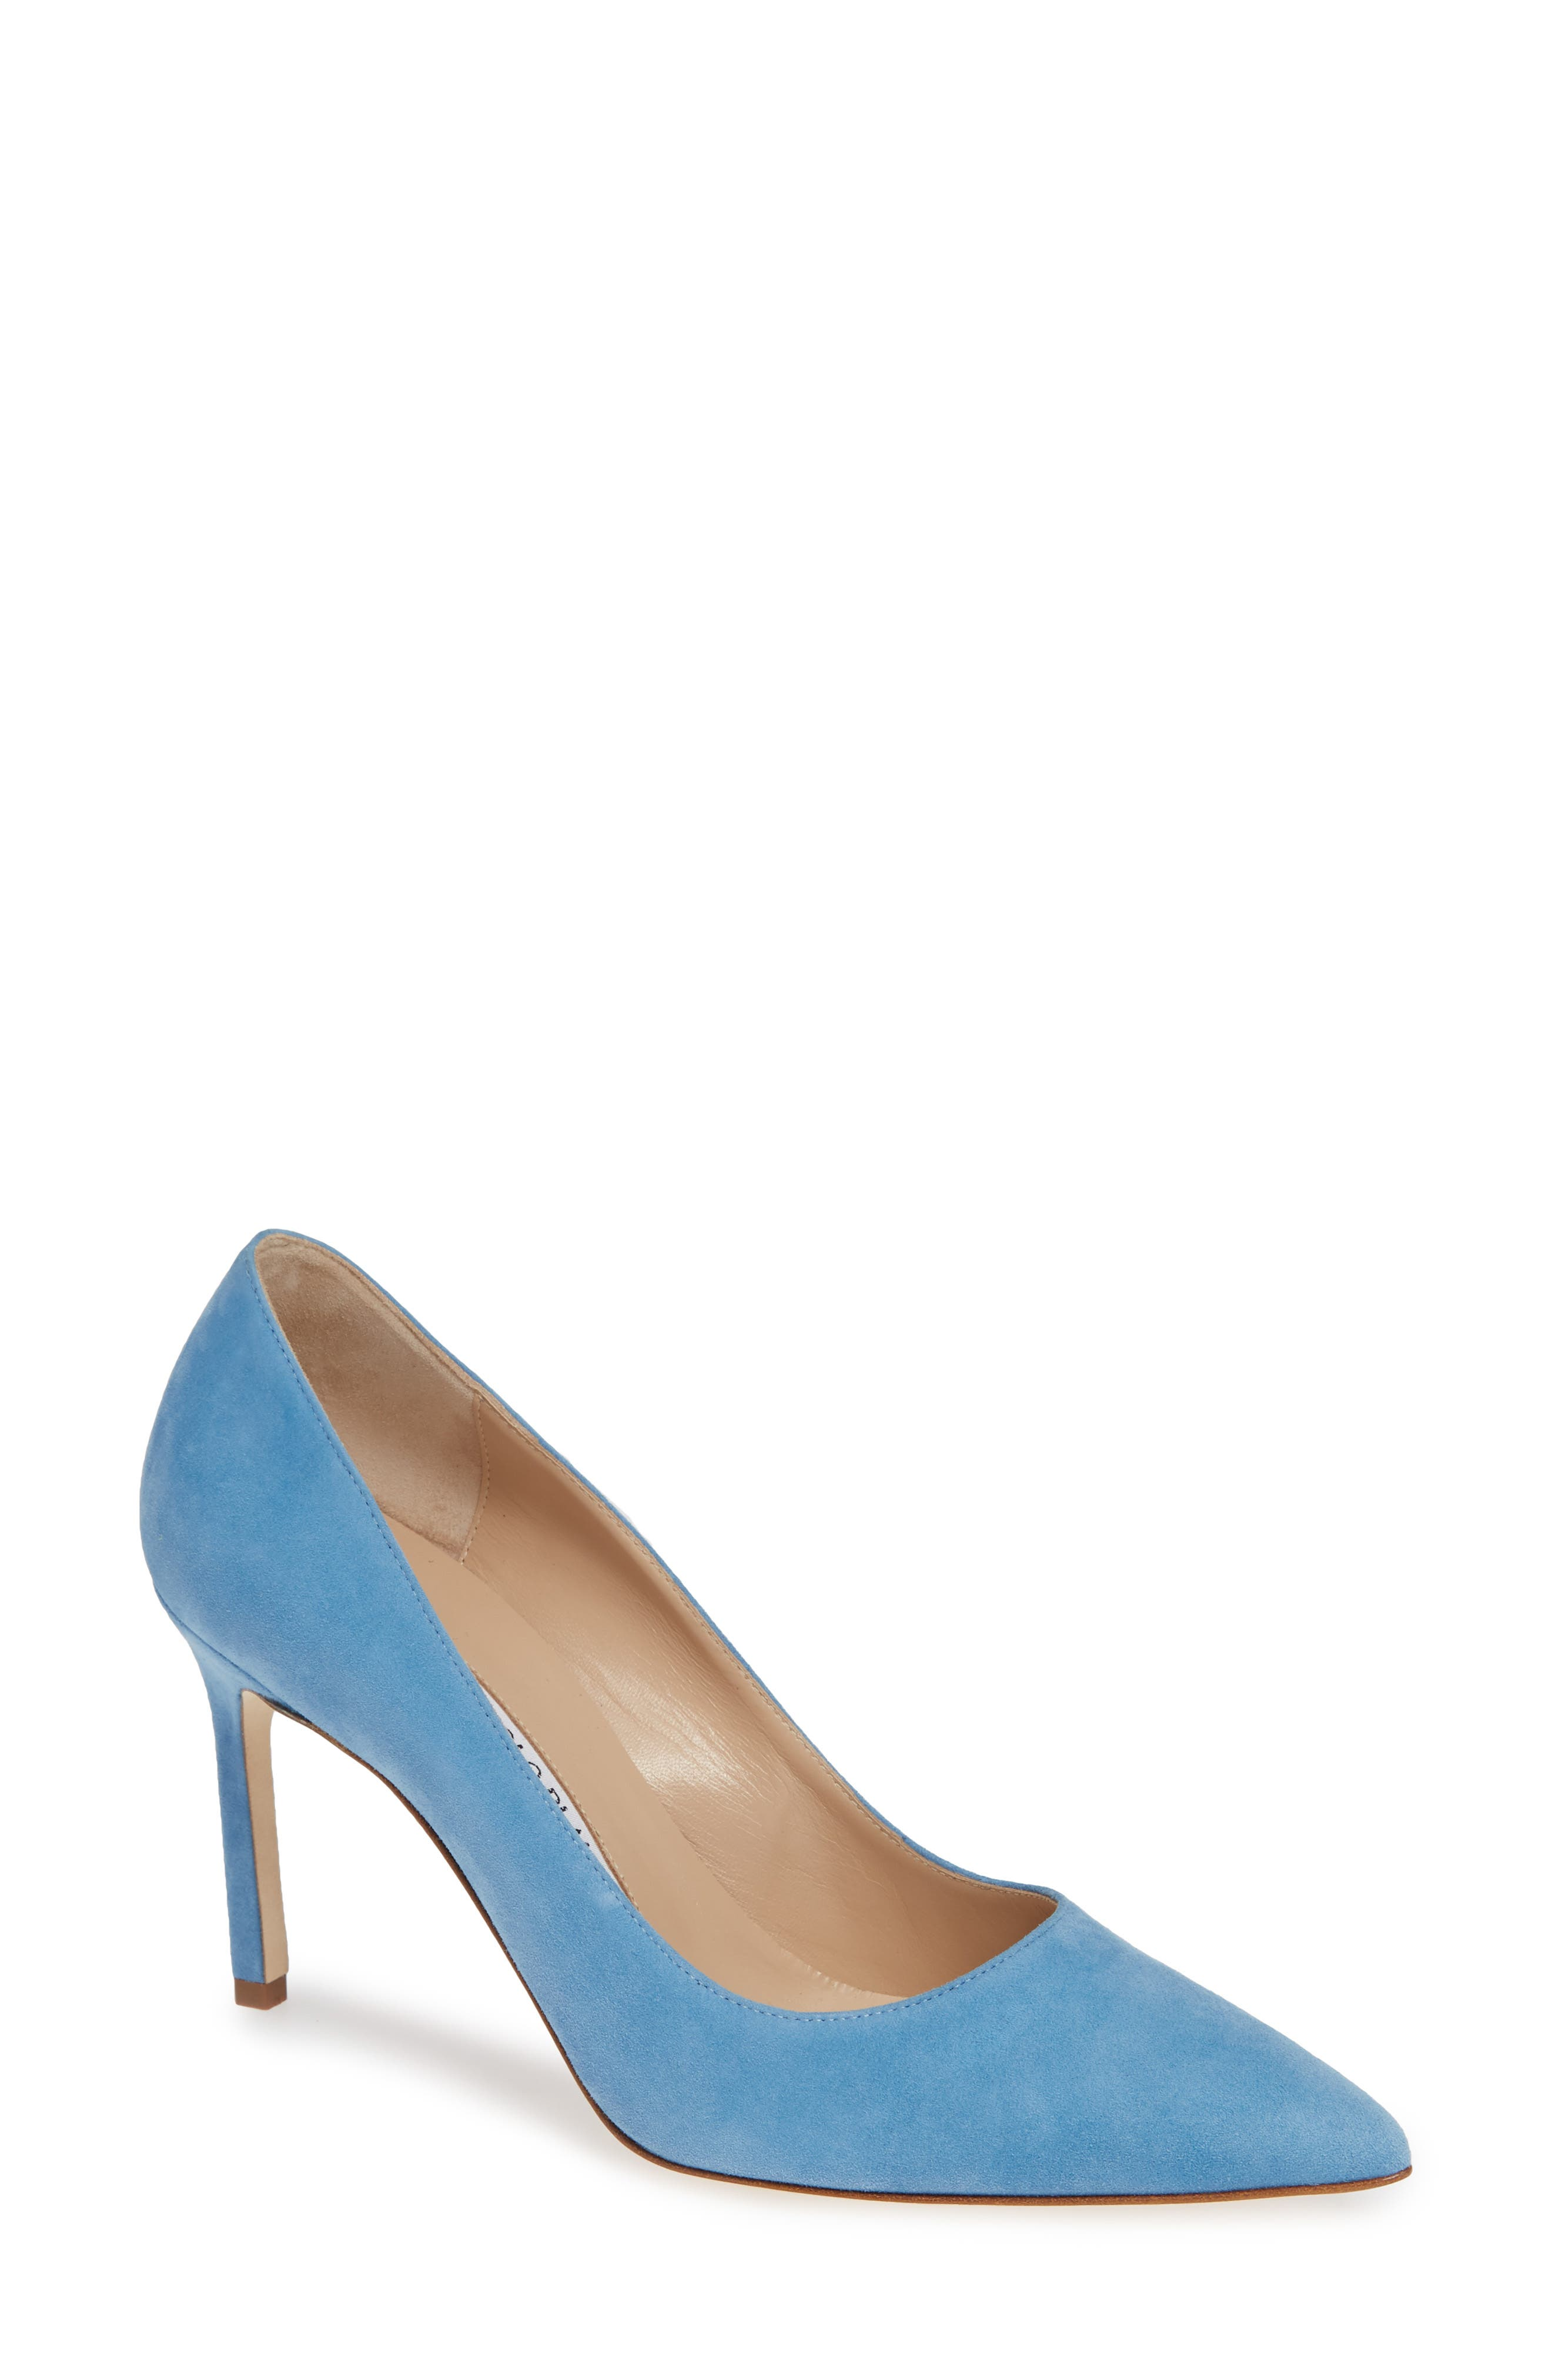 BB Pointy Toe Pump,                         Main,                         color, POWDER BLUE SUEDE